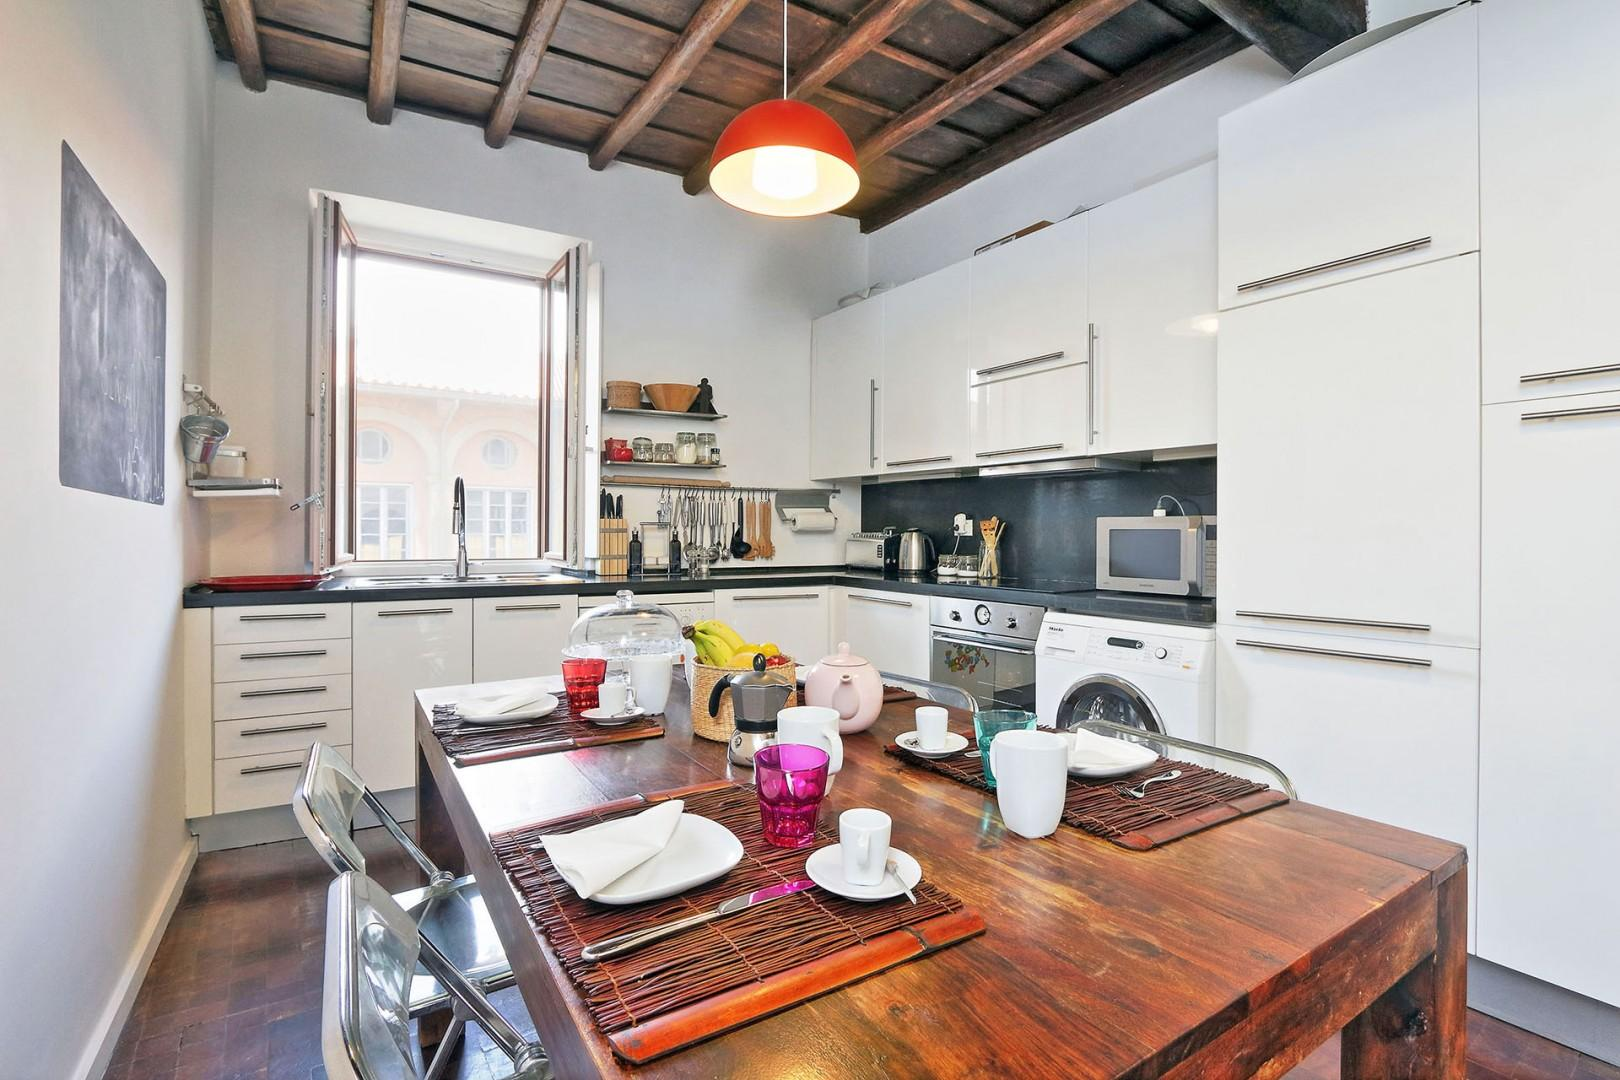 Pretty beamed ceilings enhance the ambiance of the kitchen.